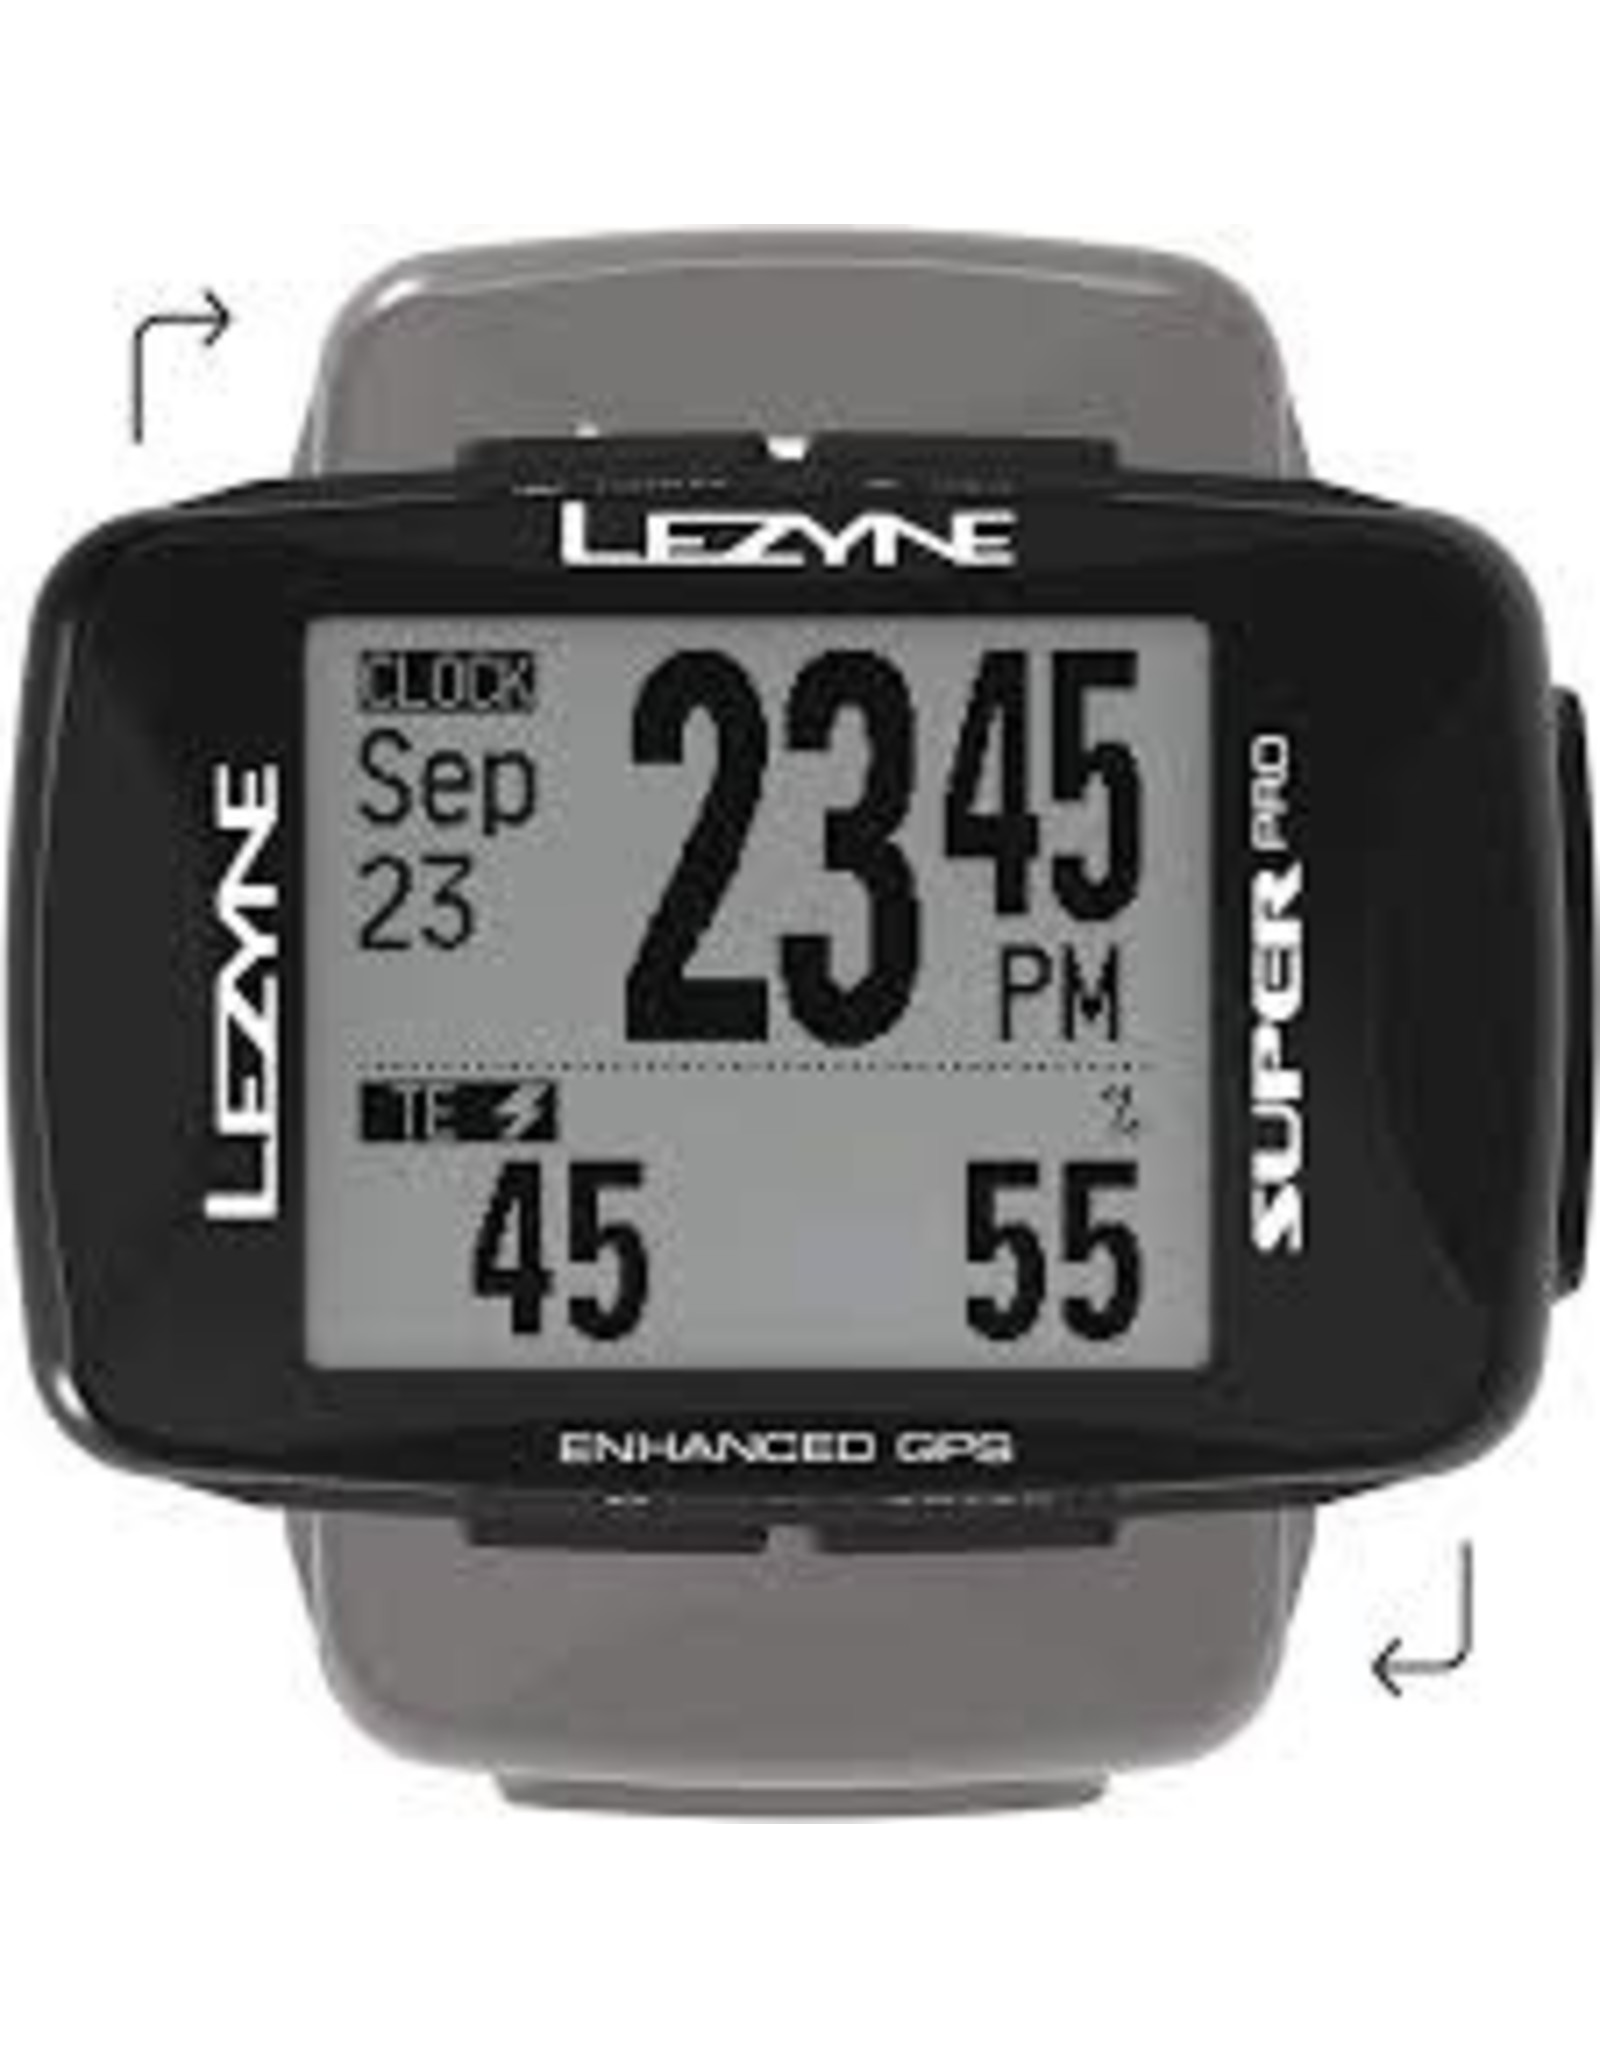 Lezyne Super Pro GPS Loaded Bike Computer - GPS, Wireless, Heart Rate Monitor, Black